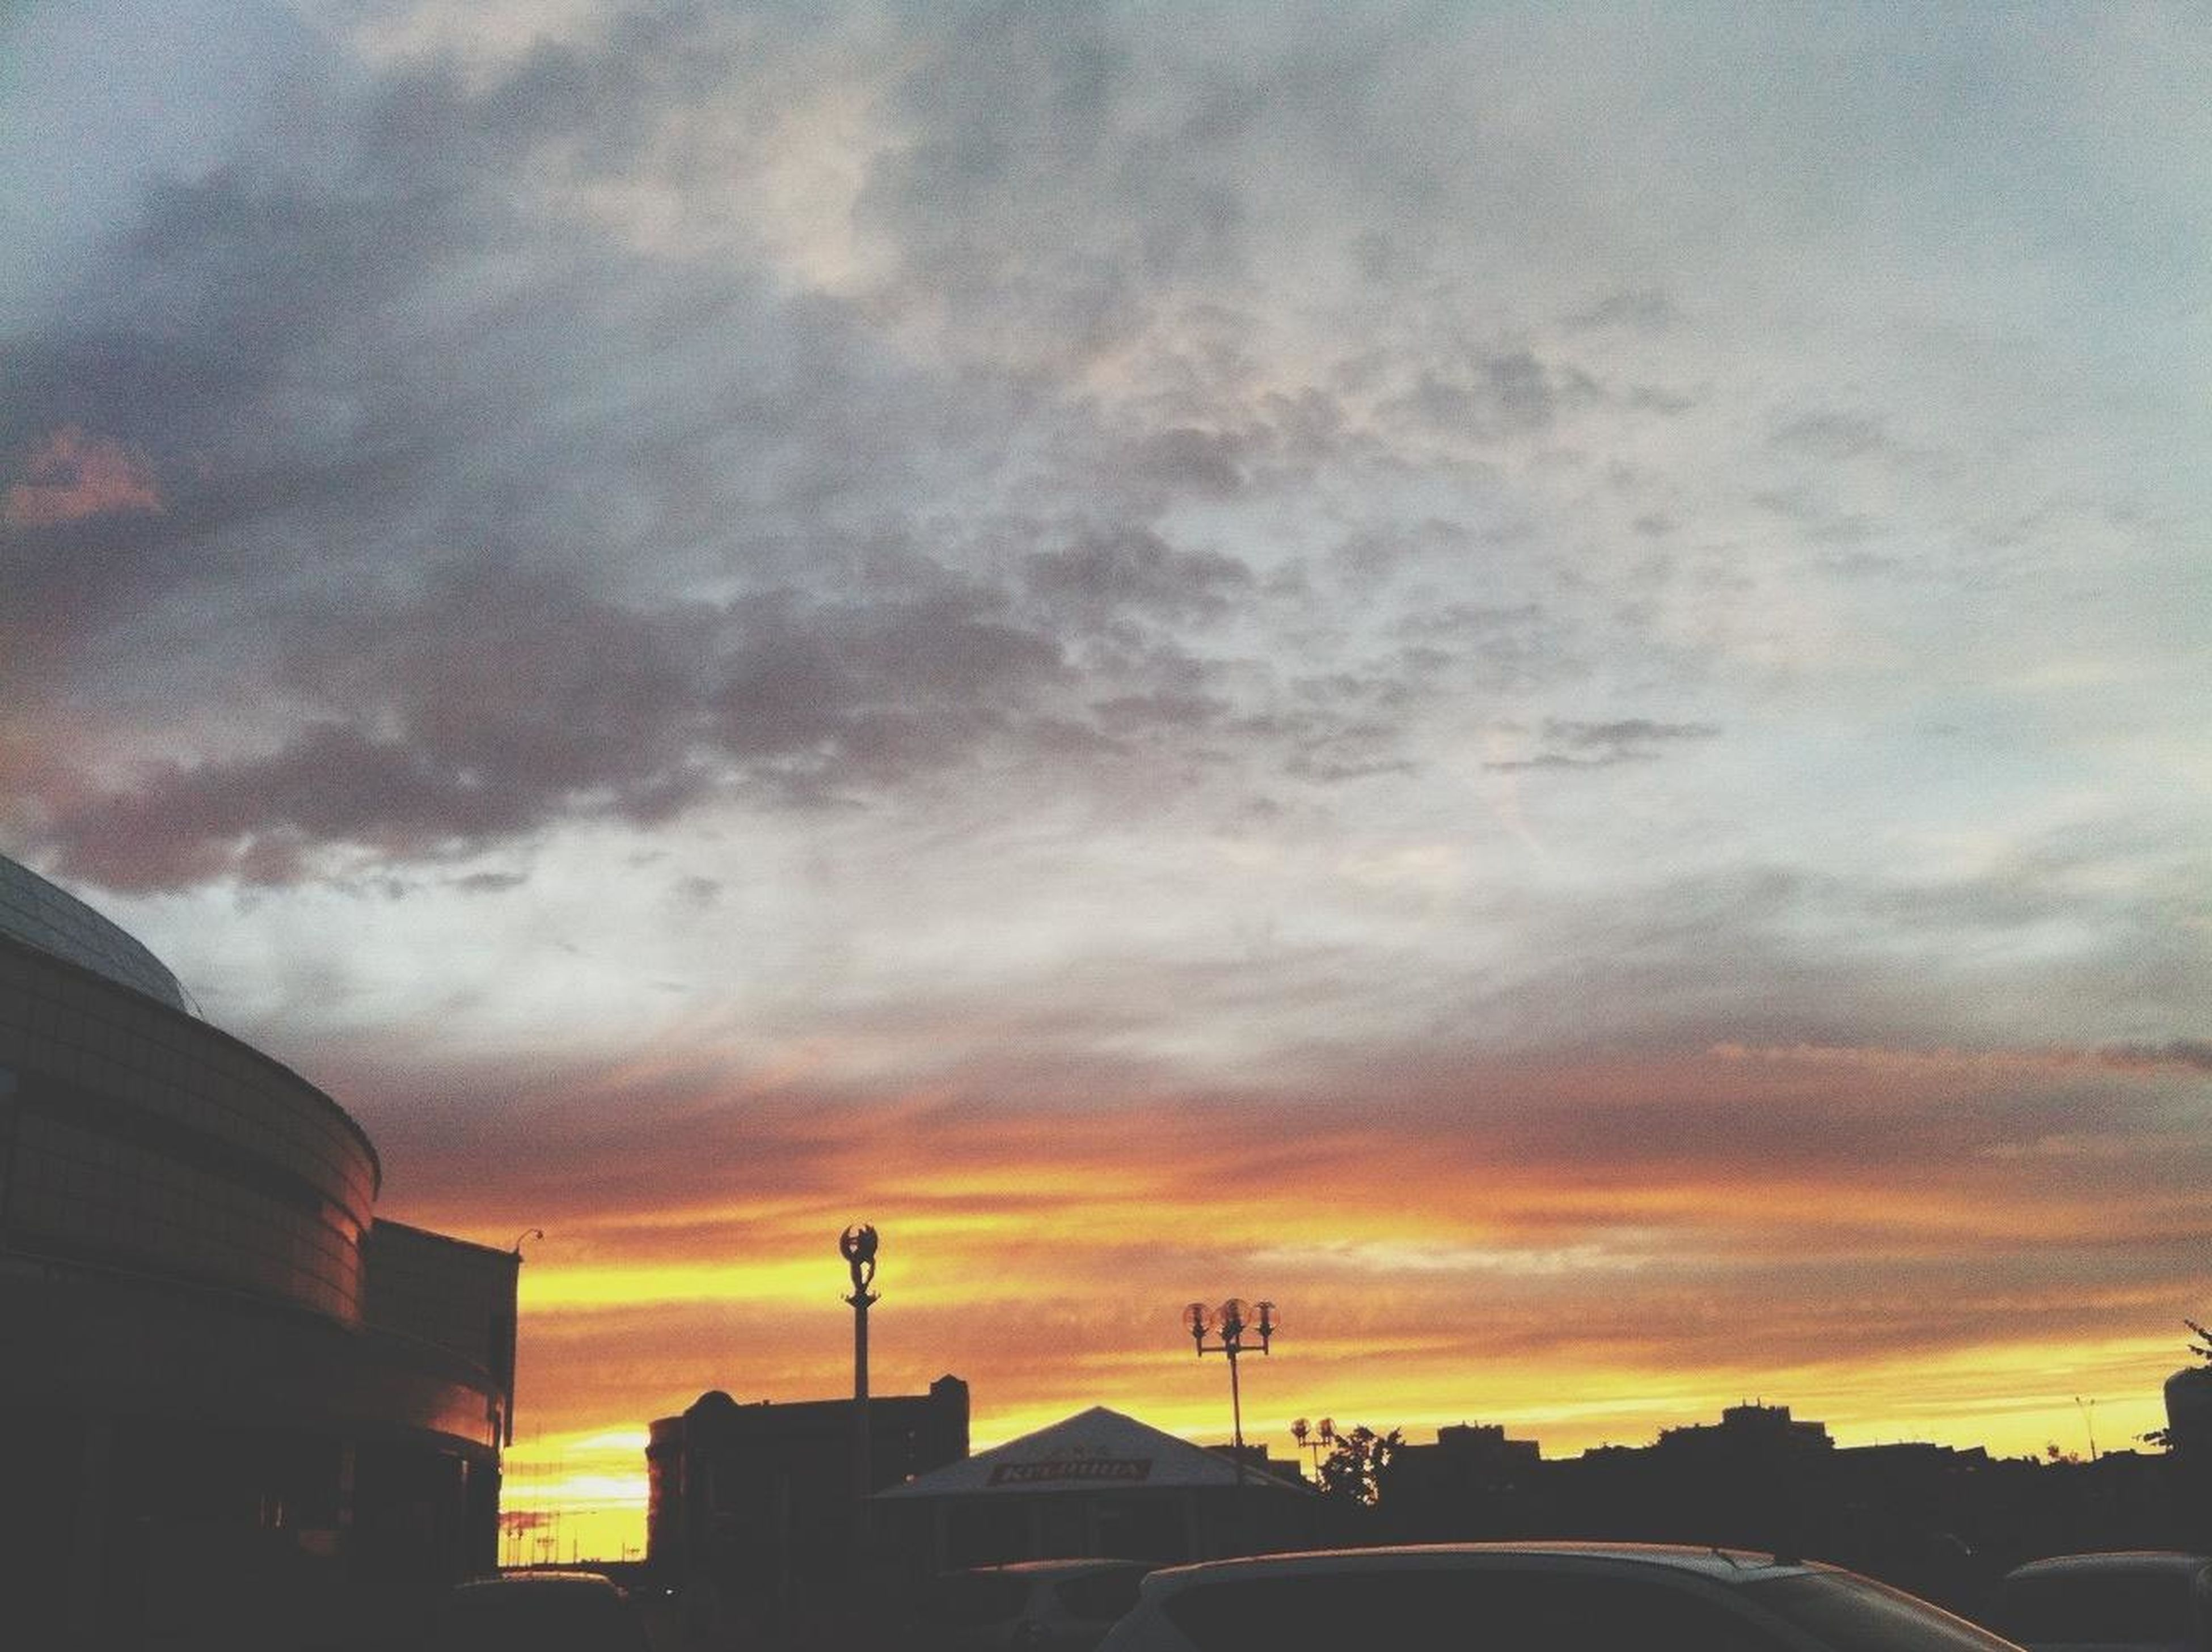 sunset, sky, silhouette, cloud - sky, building exterior, built structure, architecture, low angle view, cloudy, orange color, dramatic sky, cloud, overcast, weather, dusk, beauty in nature, outdoors, nature, house, building